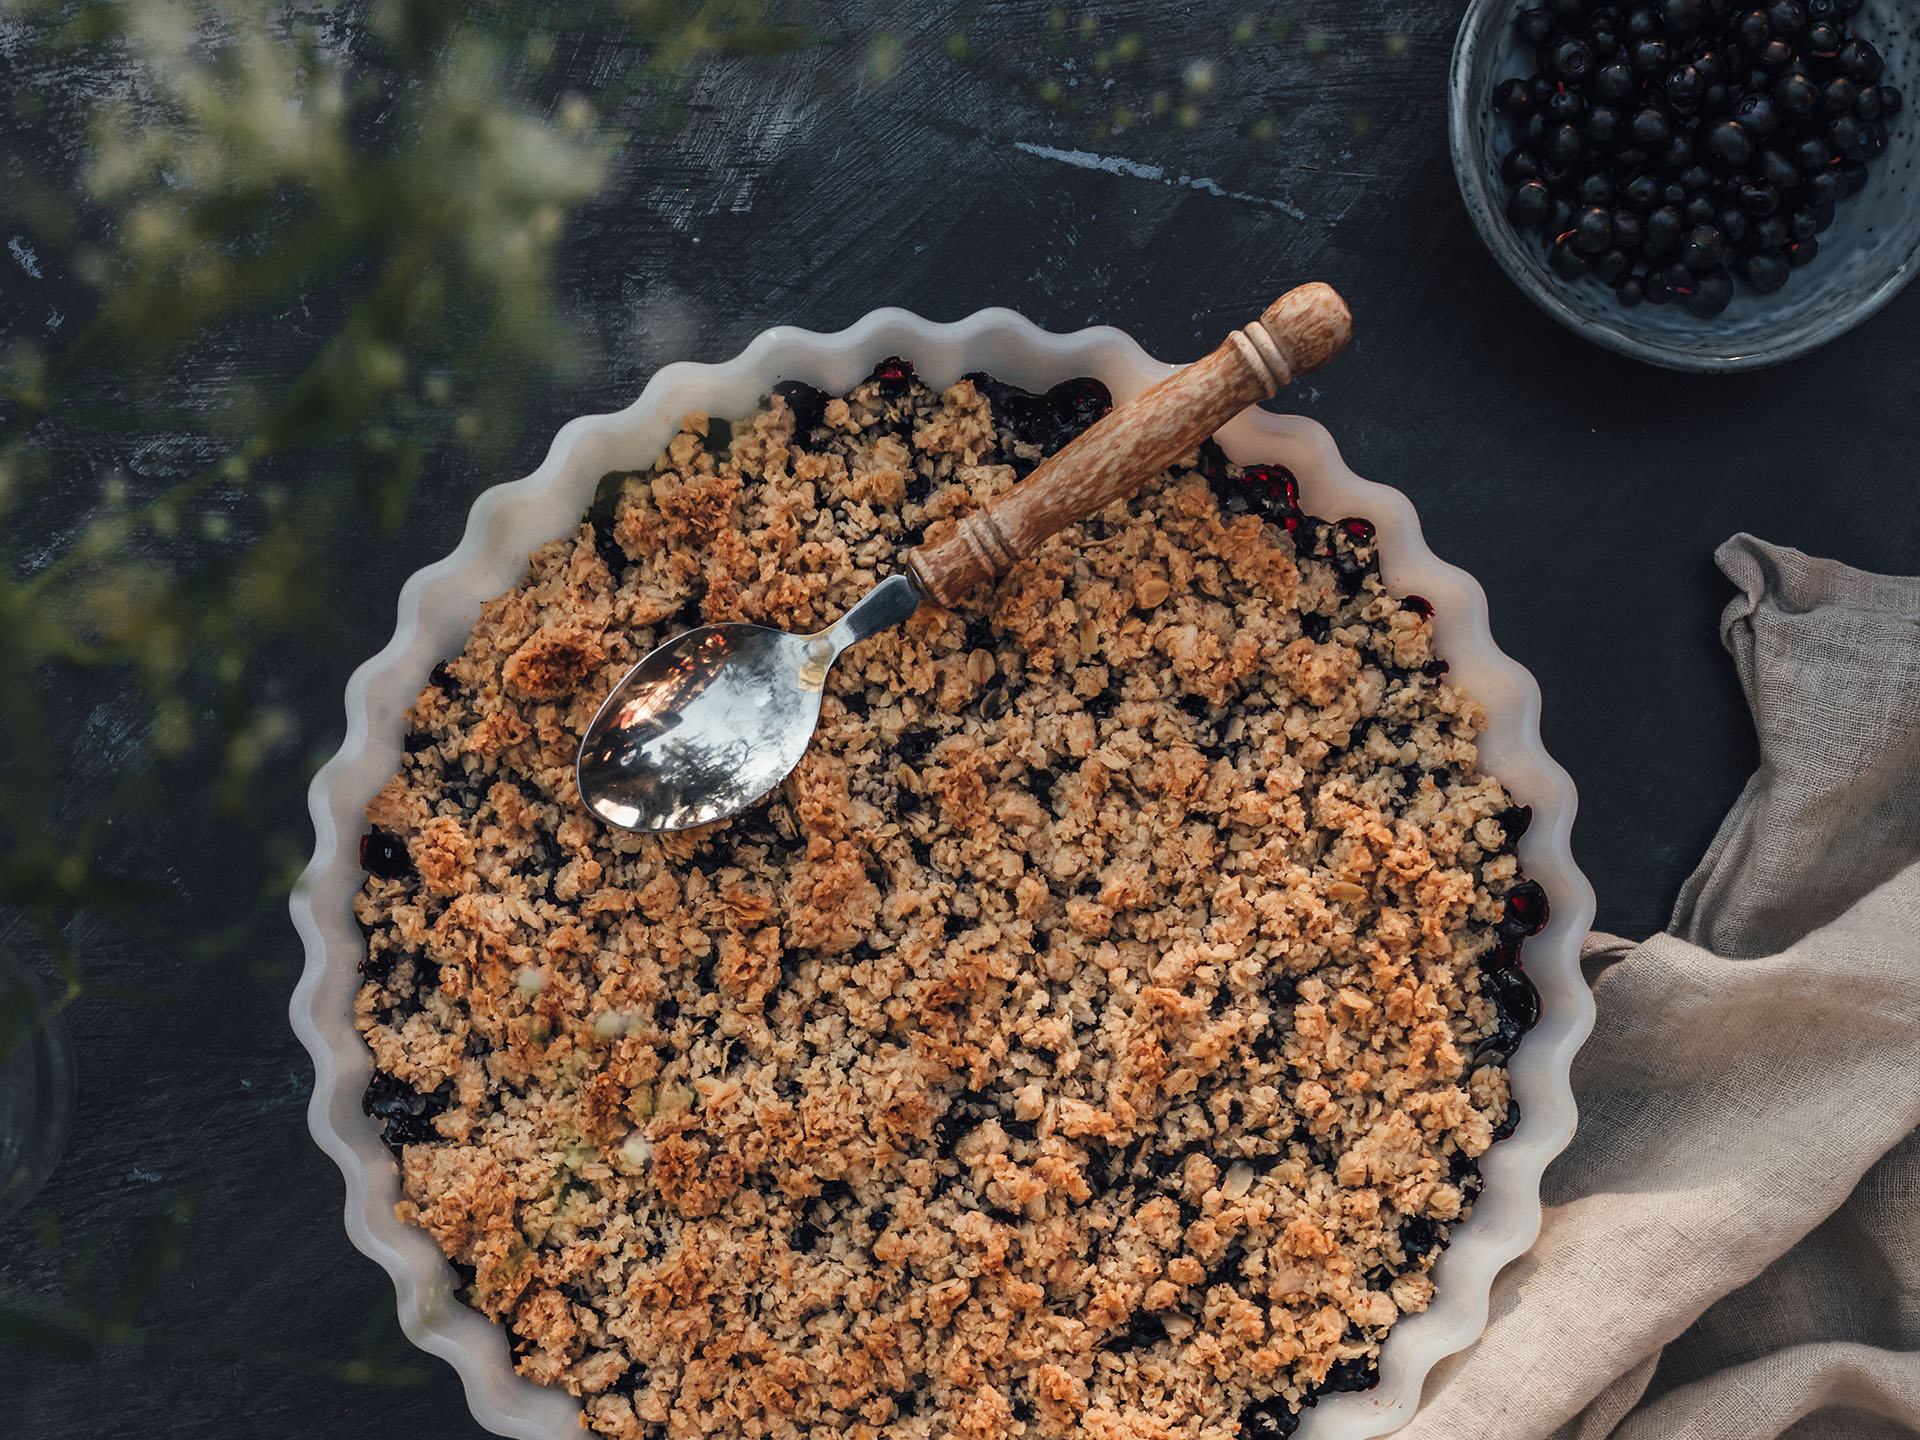 Swedish Blueberry Crumble Pie - Simple Vegan Recipe